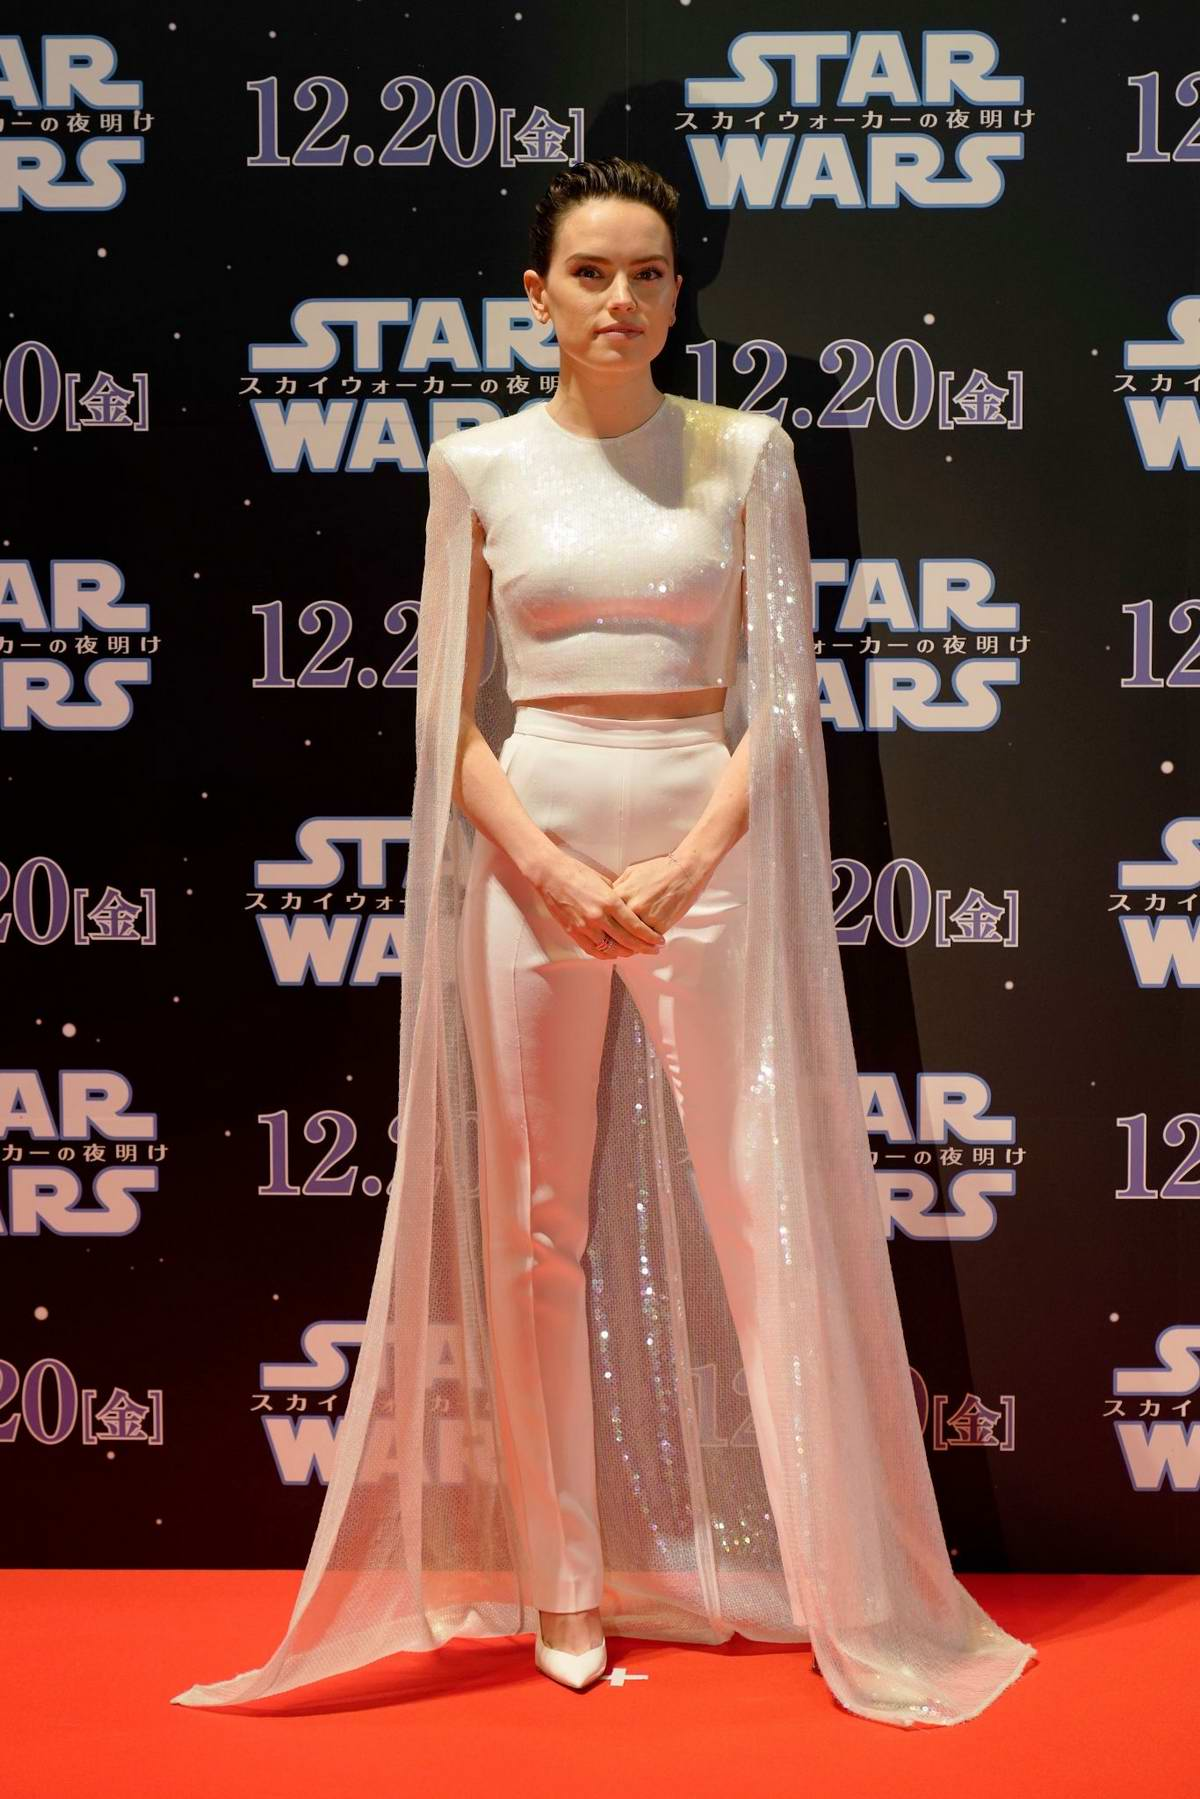 Daisy Ridley attends 'Star Wars: The Rise of Skywalker' special fan event in Tokyo, Japan